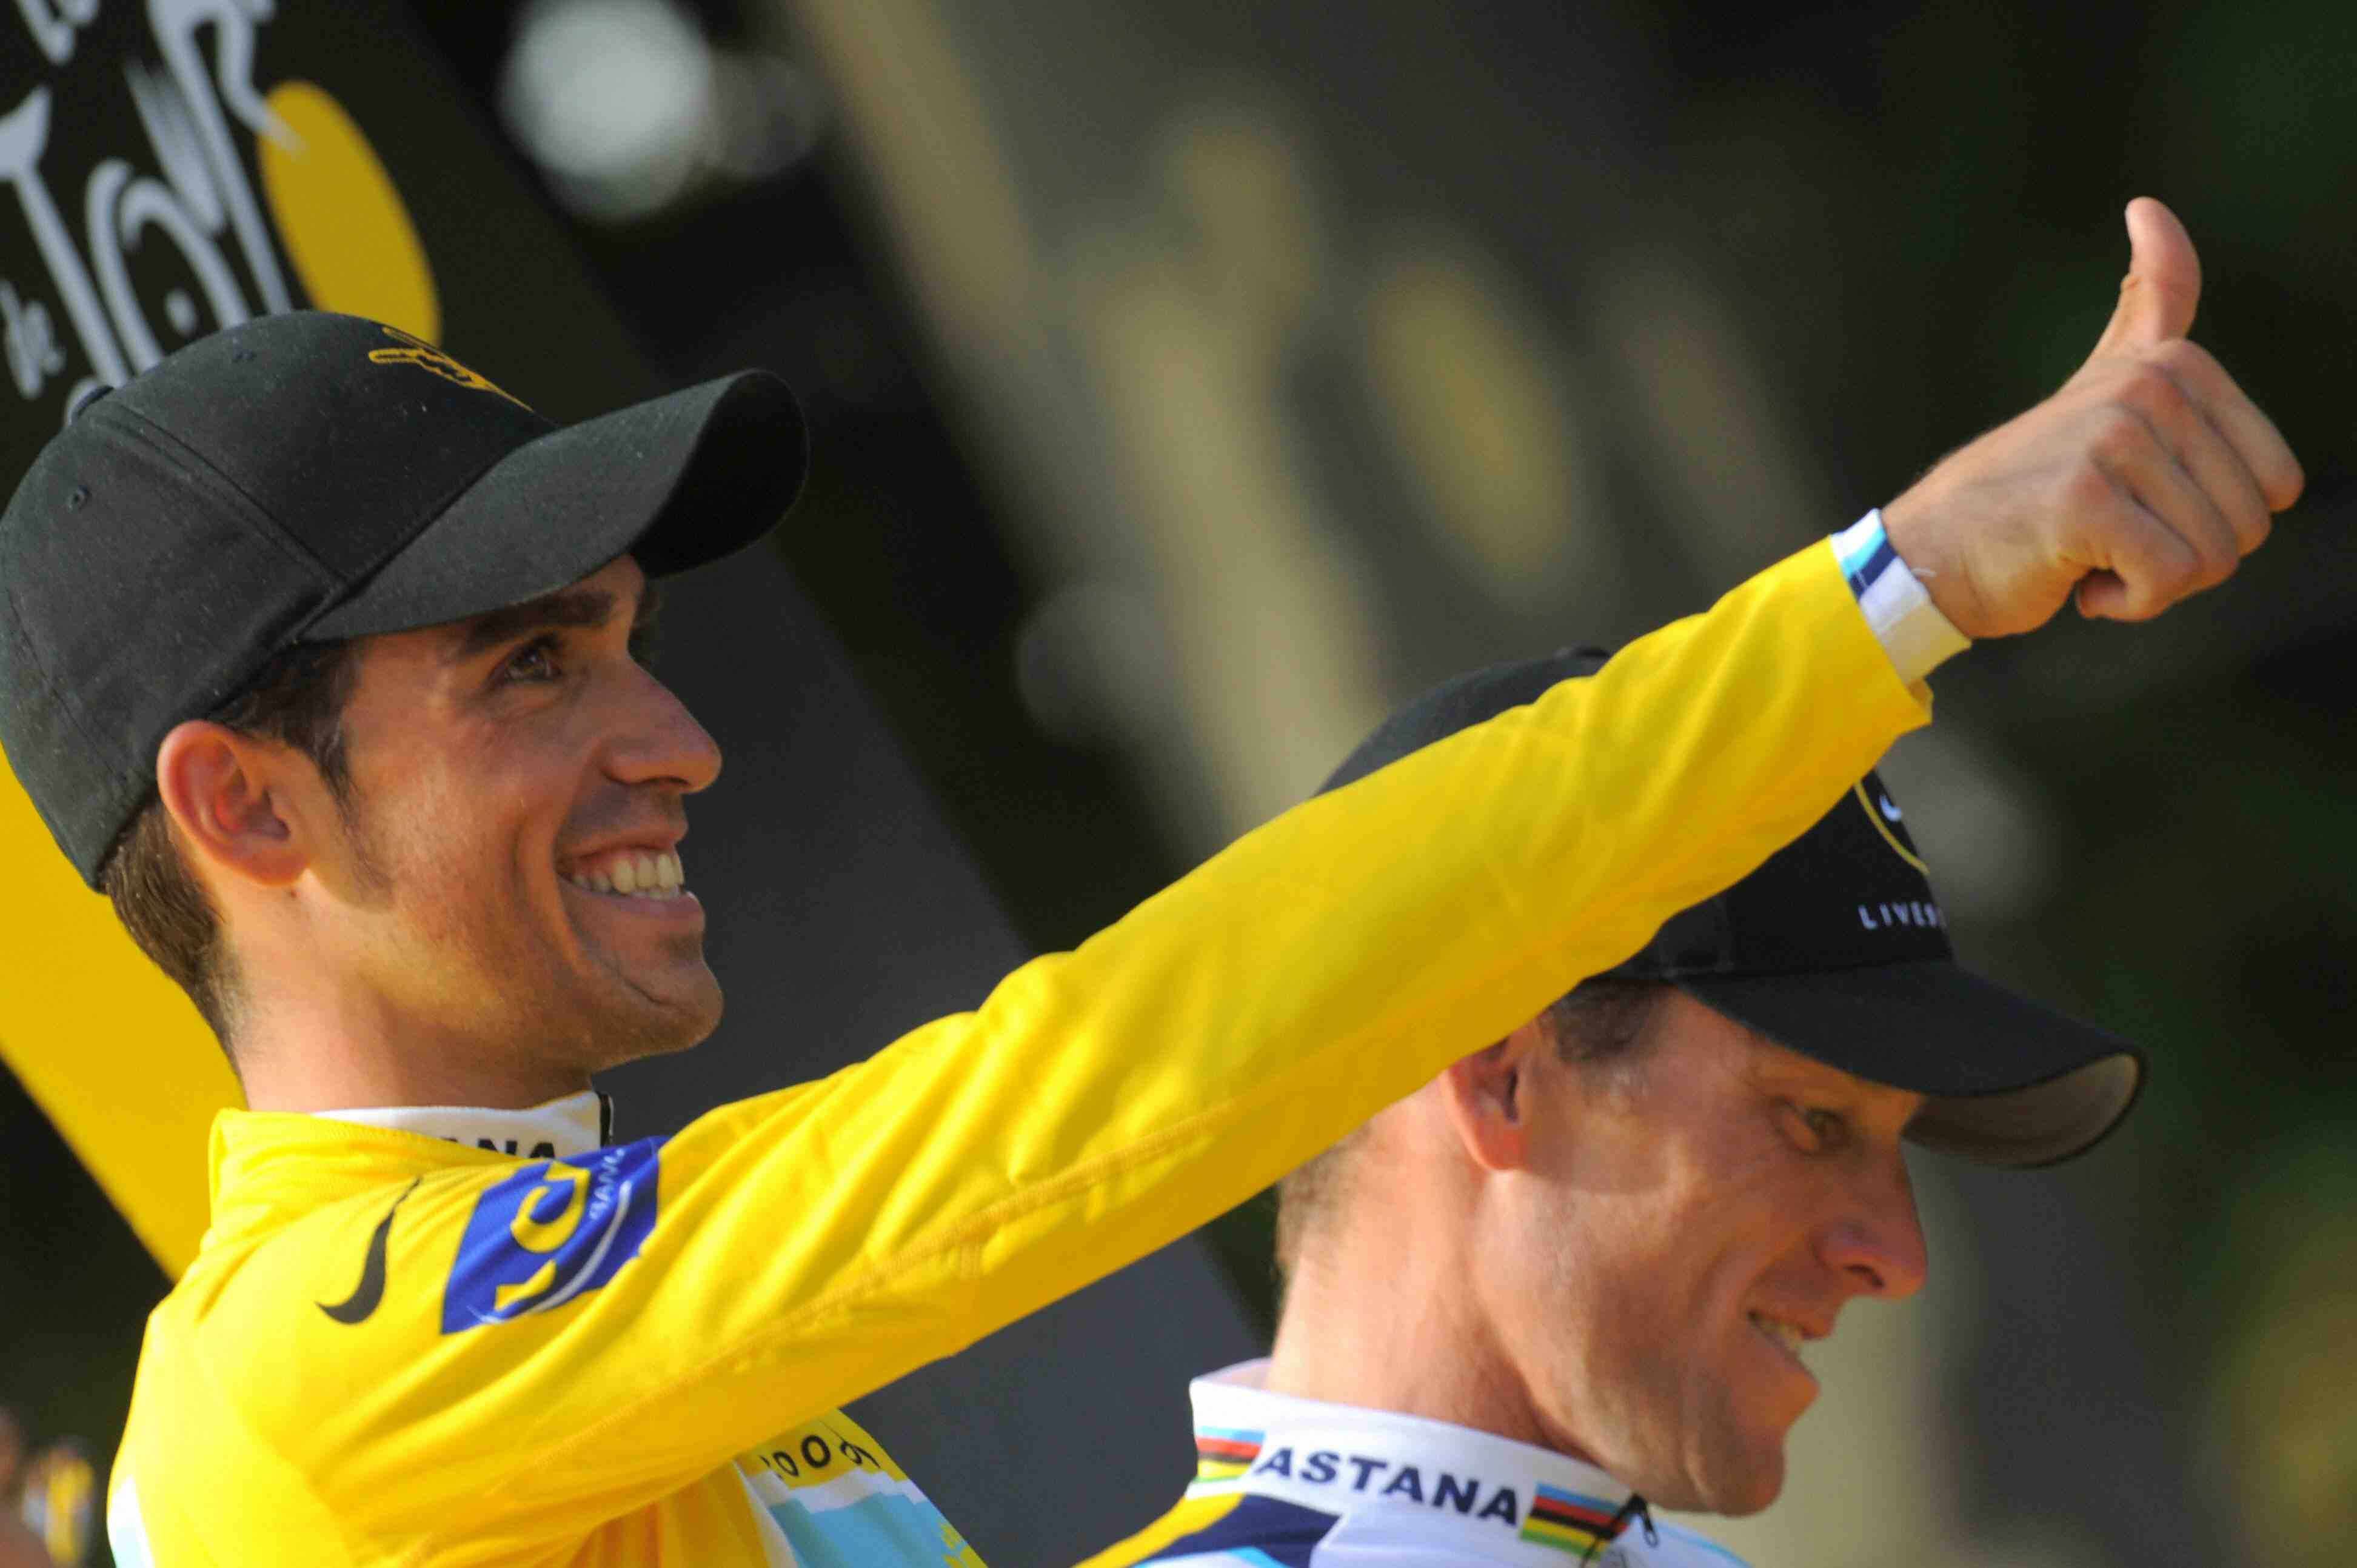 The 2009 Tour was heated up tremendously by the friction created between winner Alberto Contador and 3rd place finisher Lance Armstrong.